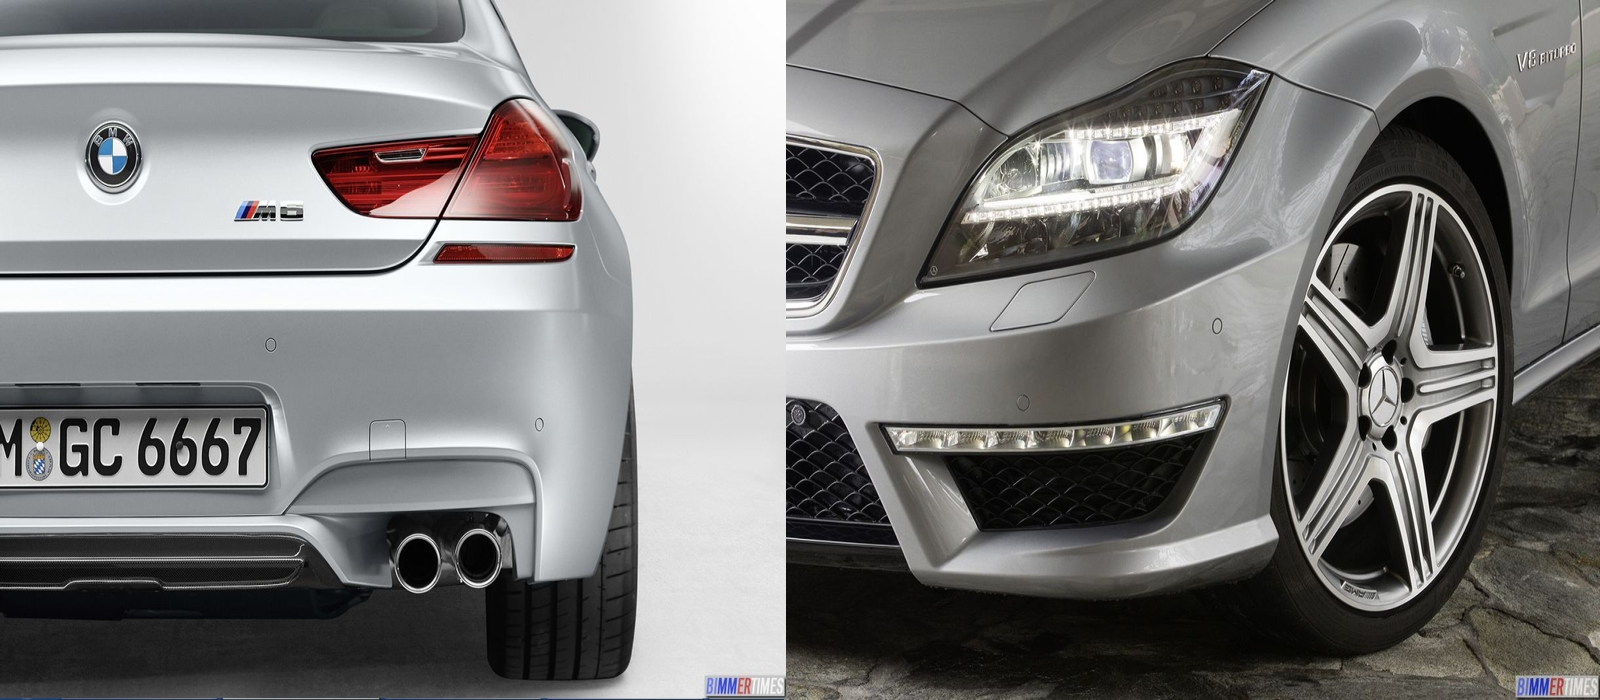 COMPARISON: 2013 Mercedes-Benz CLS63 AMG vs 2013 BMW M6 Gran Coupe Sedan